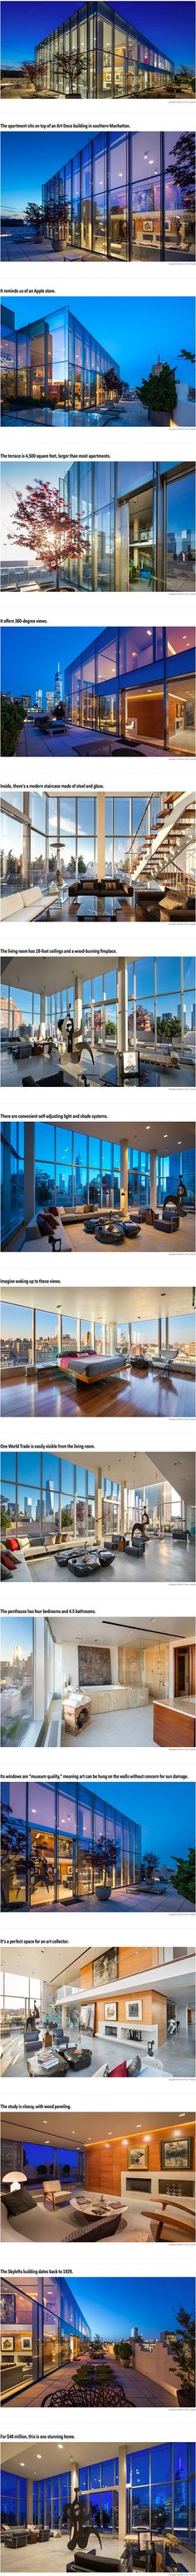 A penthouse at Skylofts on Hudson Street in TriBeCa that looks like a glass cube has returned to the market with a $48 million listing price, according to The New York Daily News. The  four-bedroom, 4.5 bathroom apartment has 360-degree views of Manhattan and the Hudson River. It's being sold by William Duker, a private investor who did a stint in prison for defrauding the government.